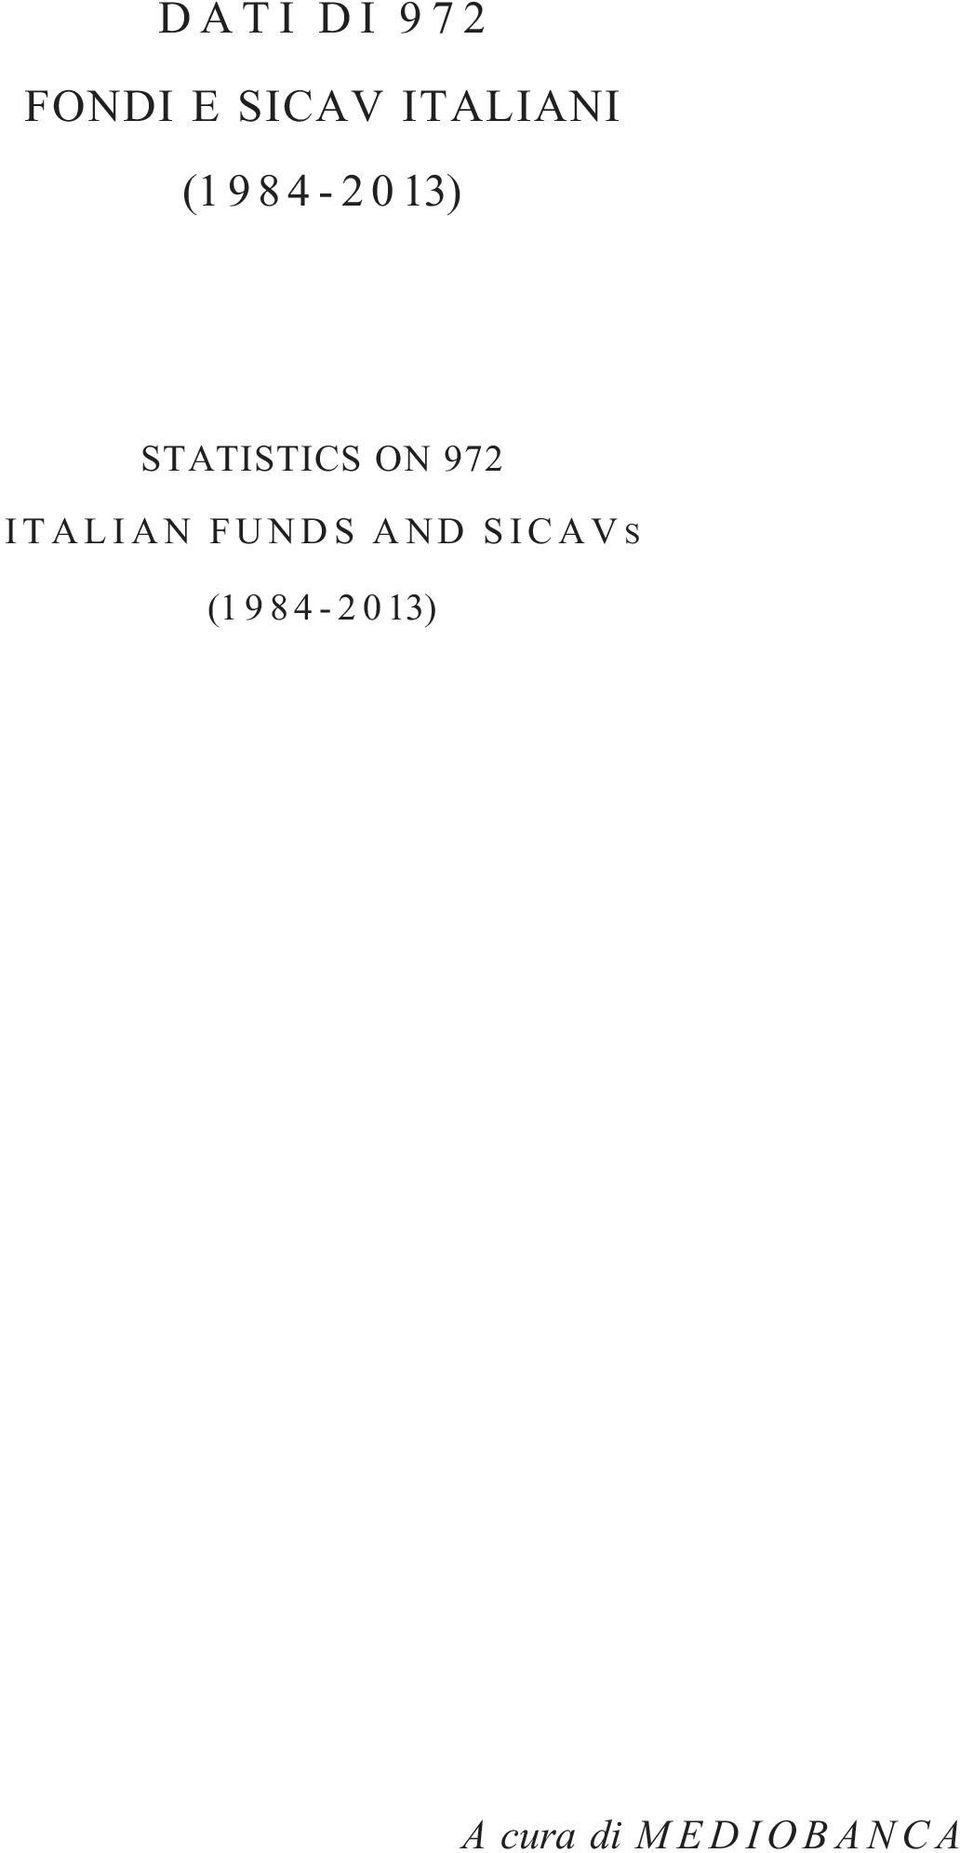 ITALIAN FUNDS AND SICAVS